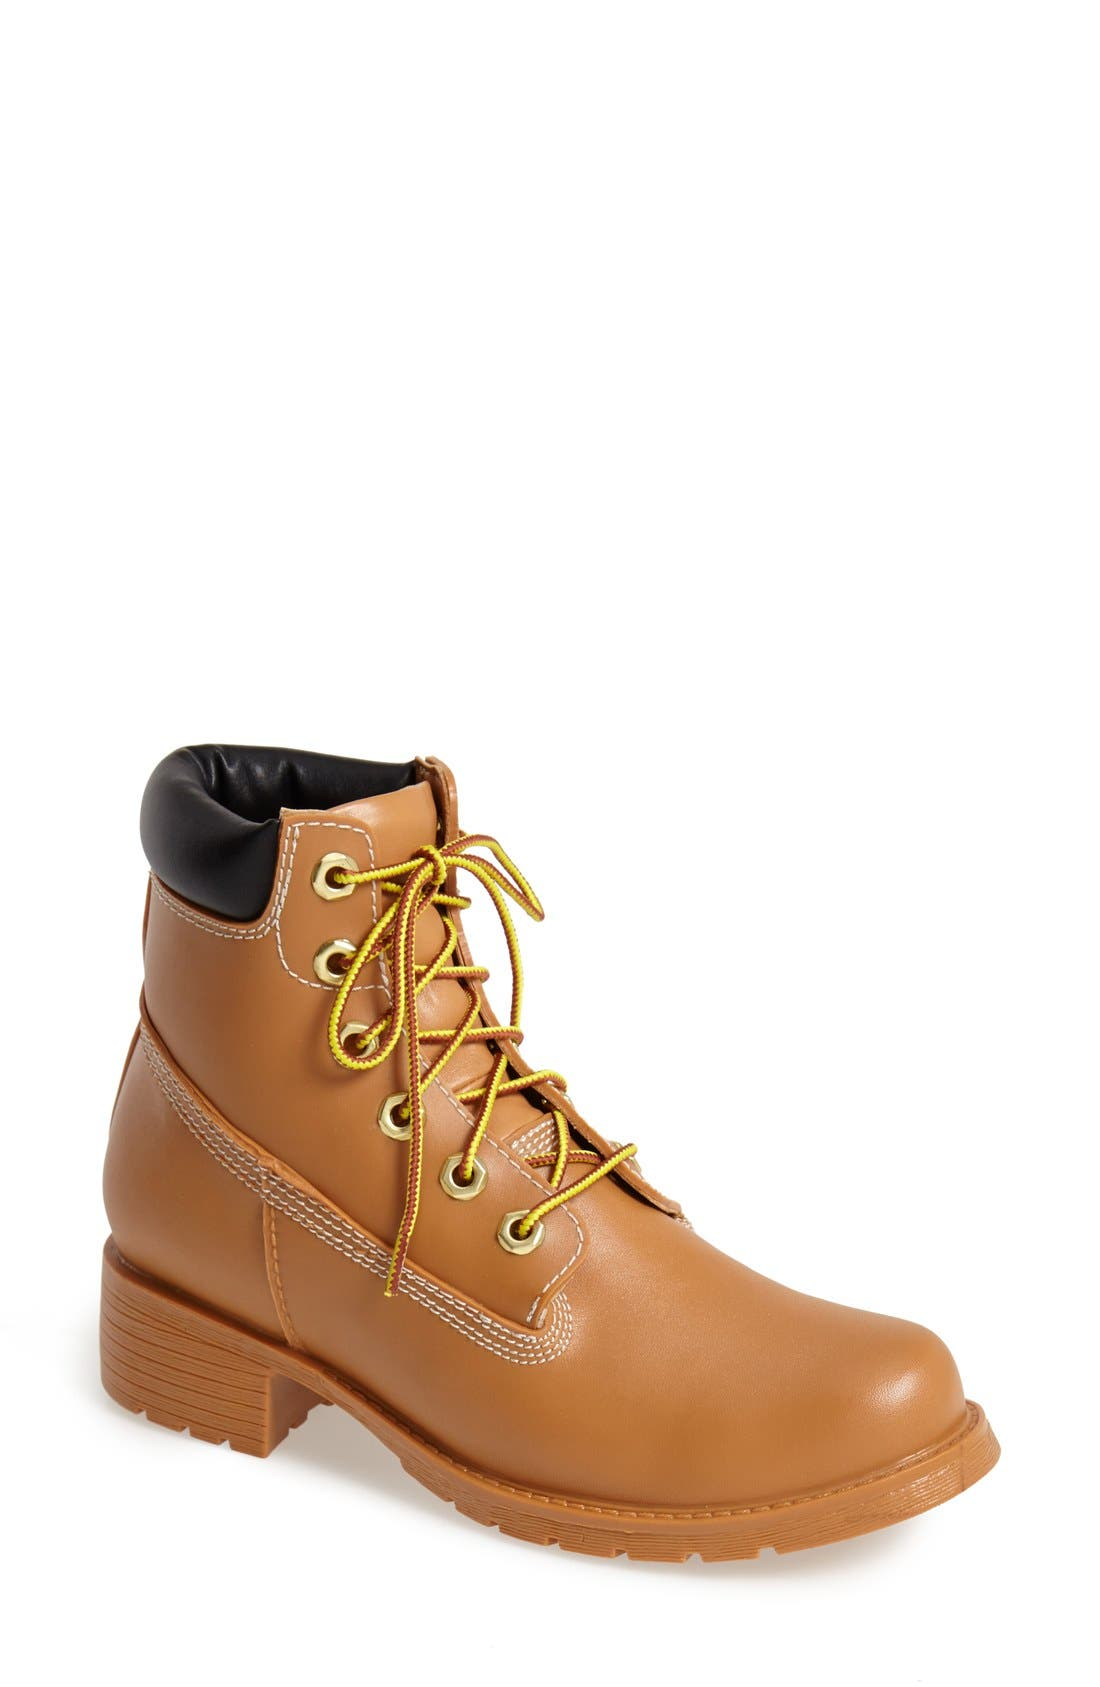 Alternate Image 1 Selected - Jeffrey Campbell 'Deluge' Water Resistant Military Boot (Women)